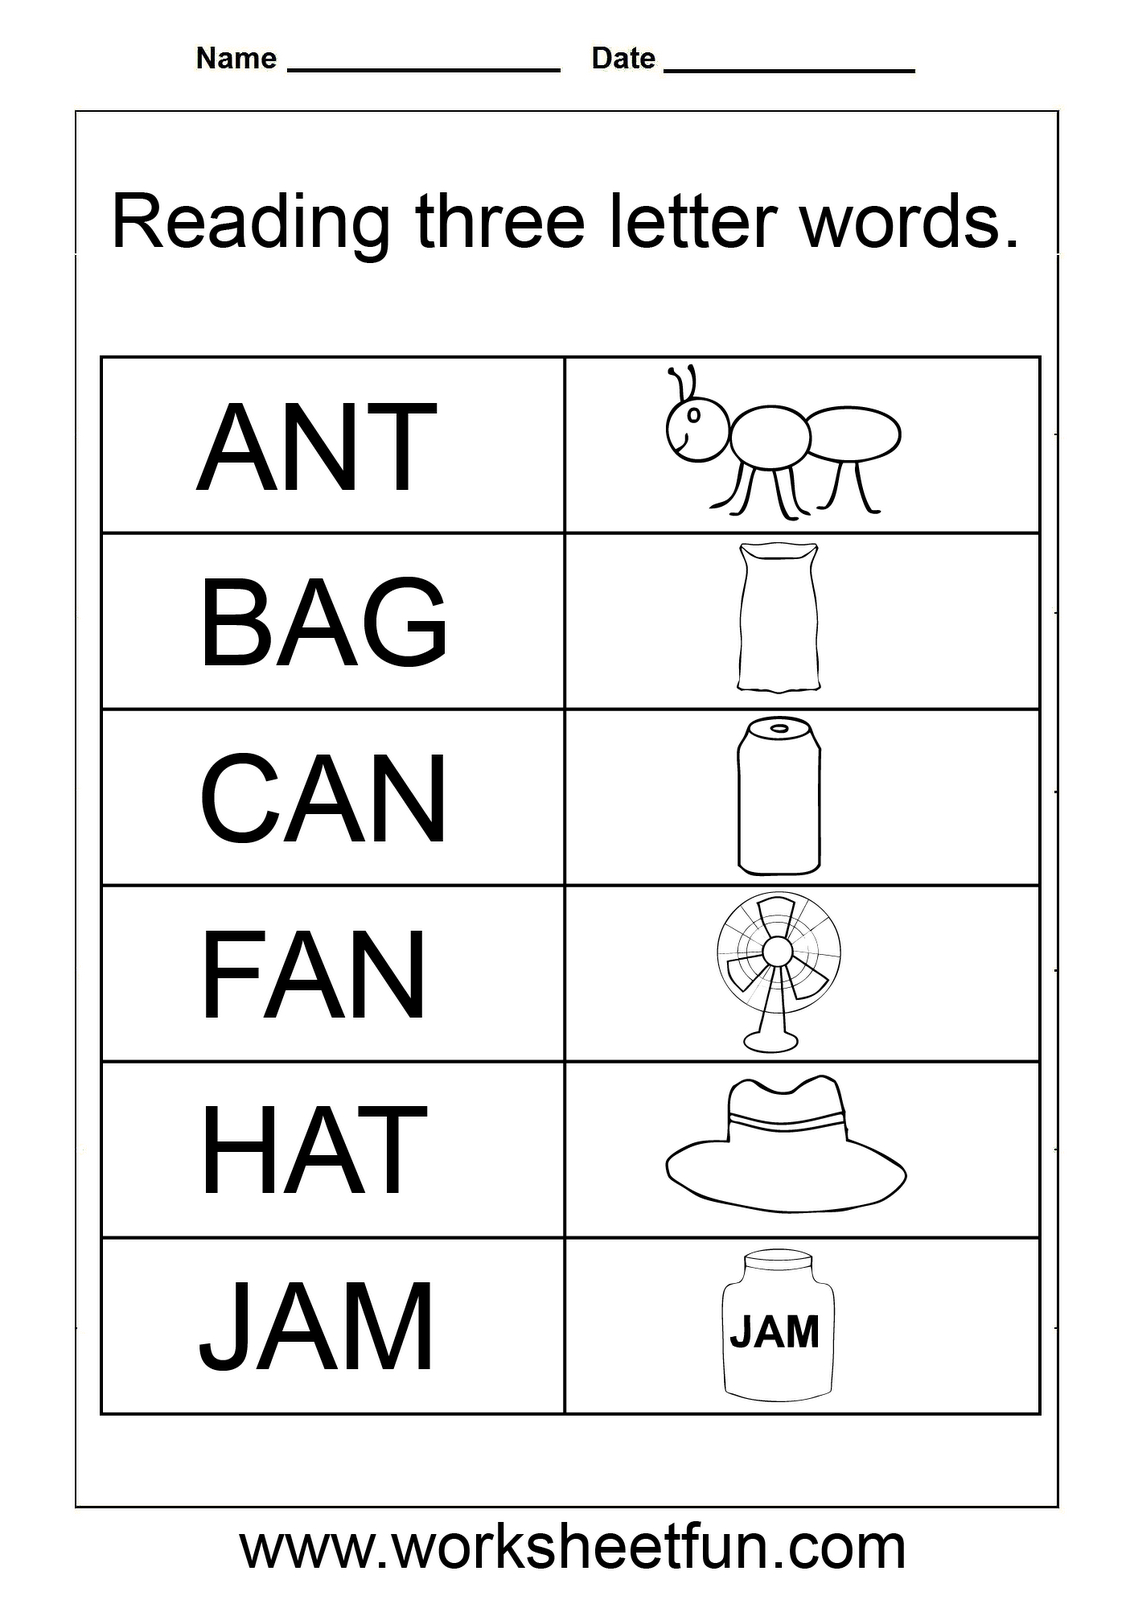 3 Letter Words Worksheets For Kindergarten | Spelling pertaining to Tracing Three Letter Words Worksheets